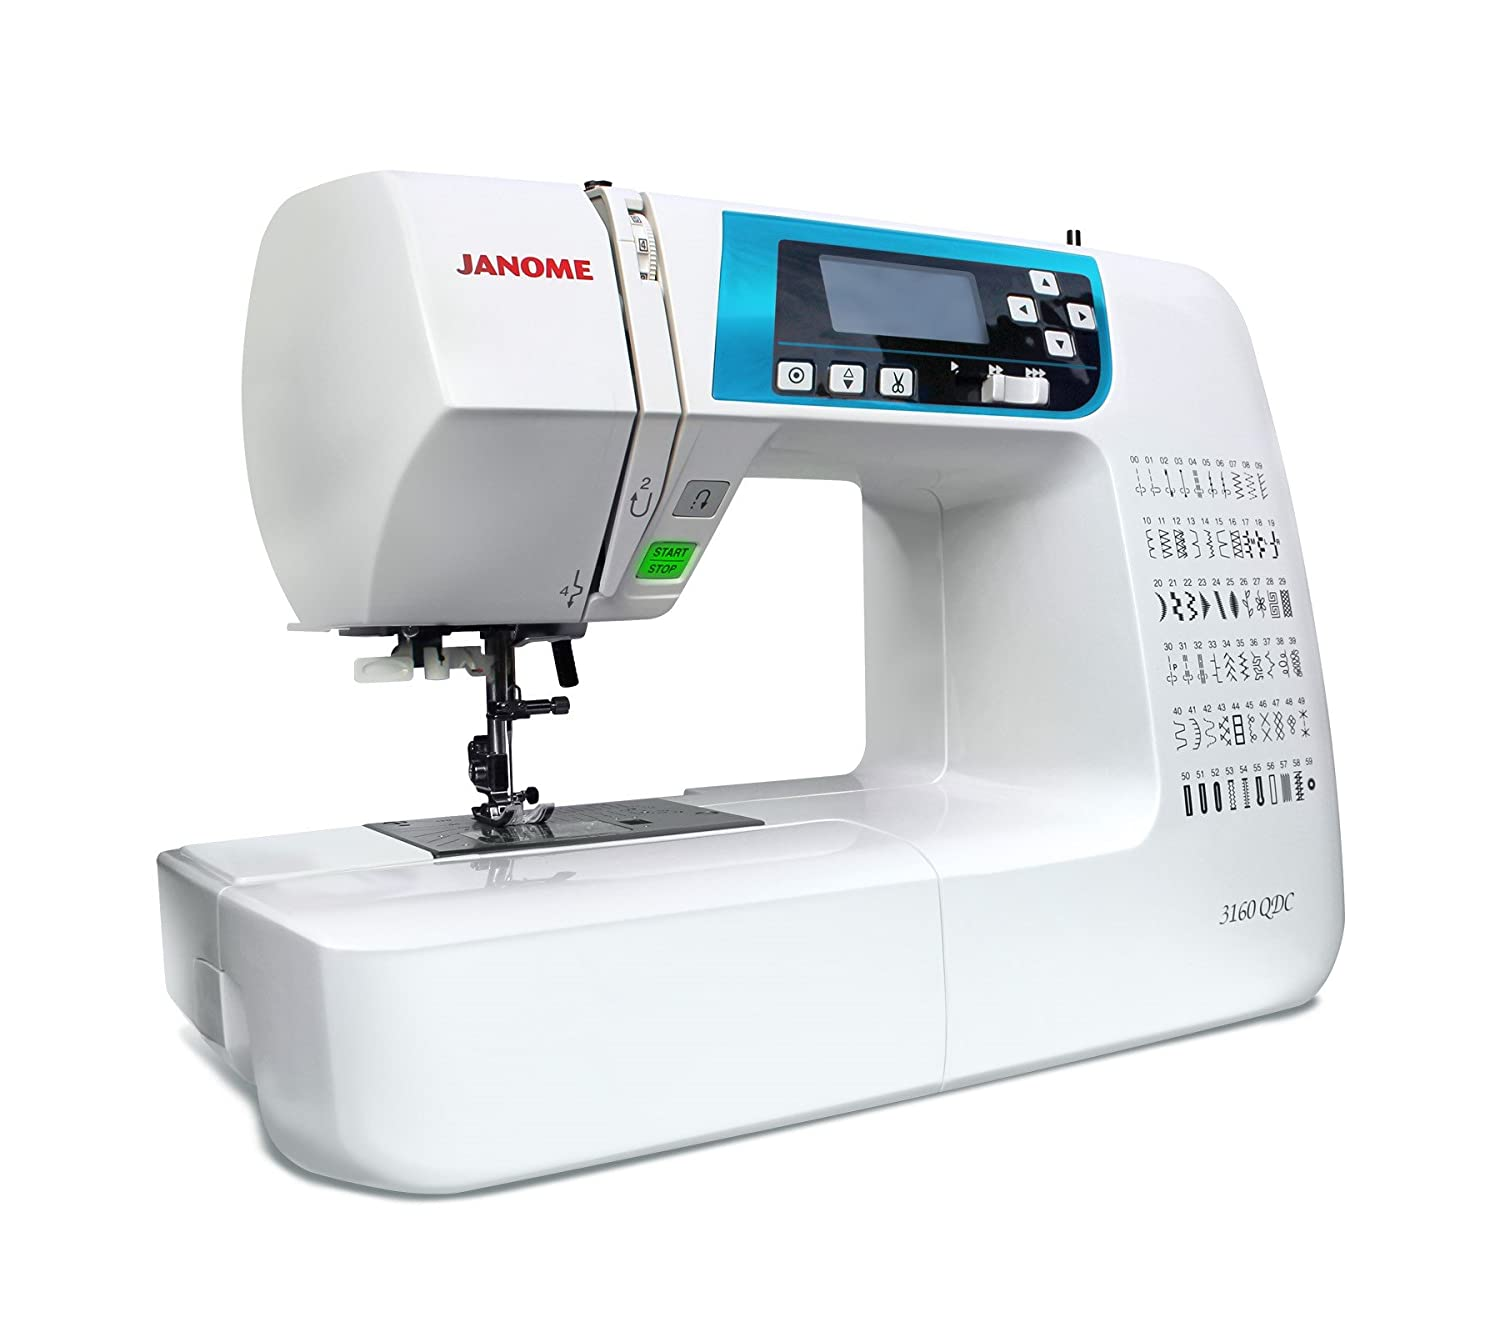 content janome machine sewing with res inflow global quilting and inflowcomponent cancel b p ebay bonus kit s quilt